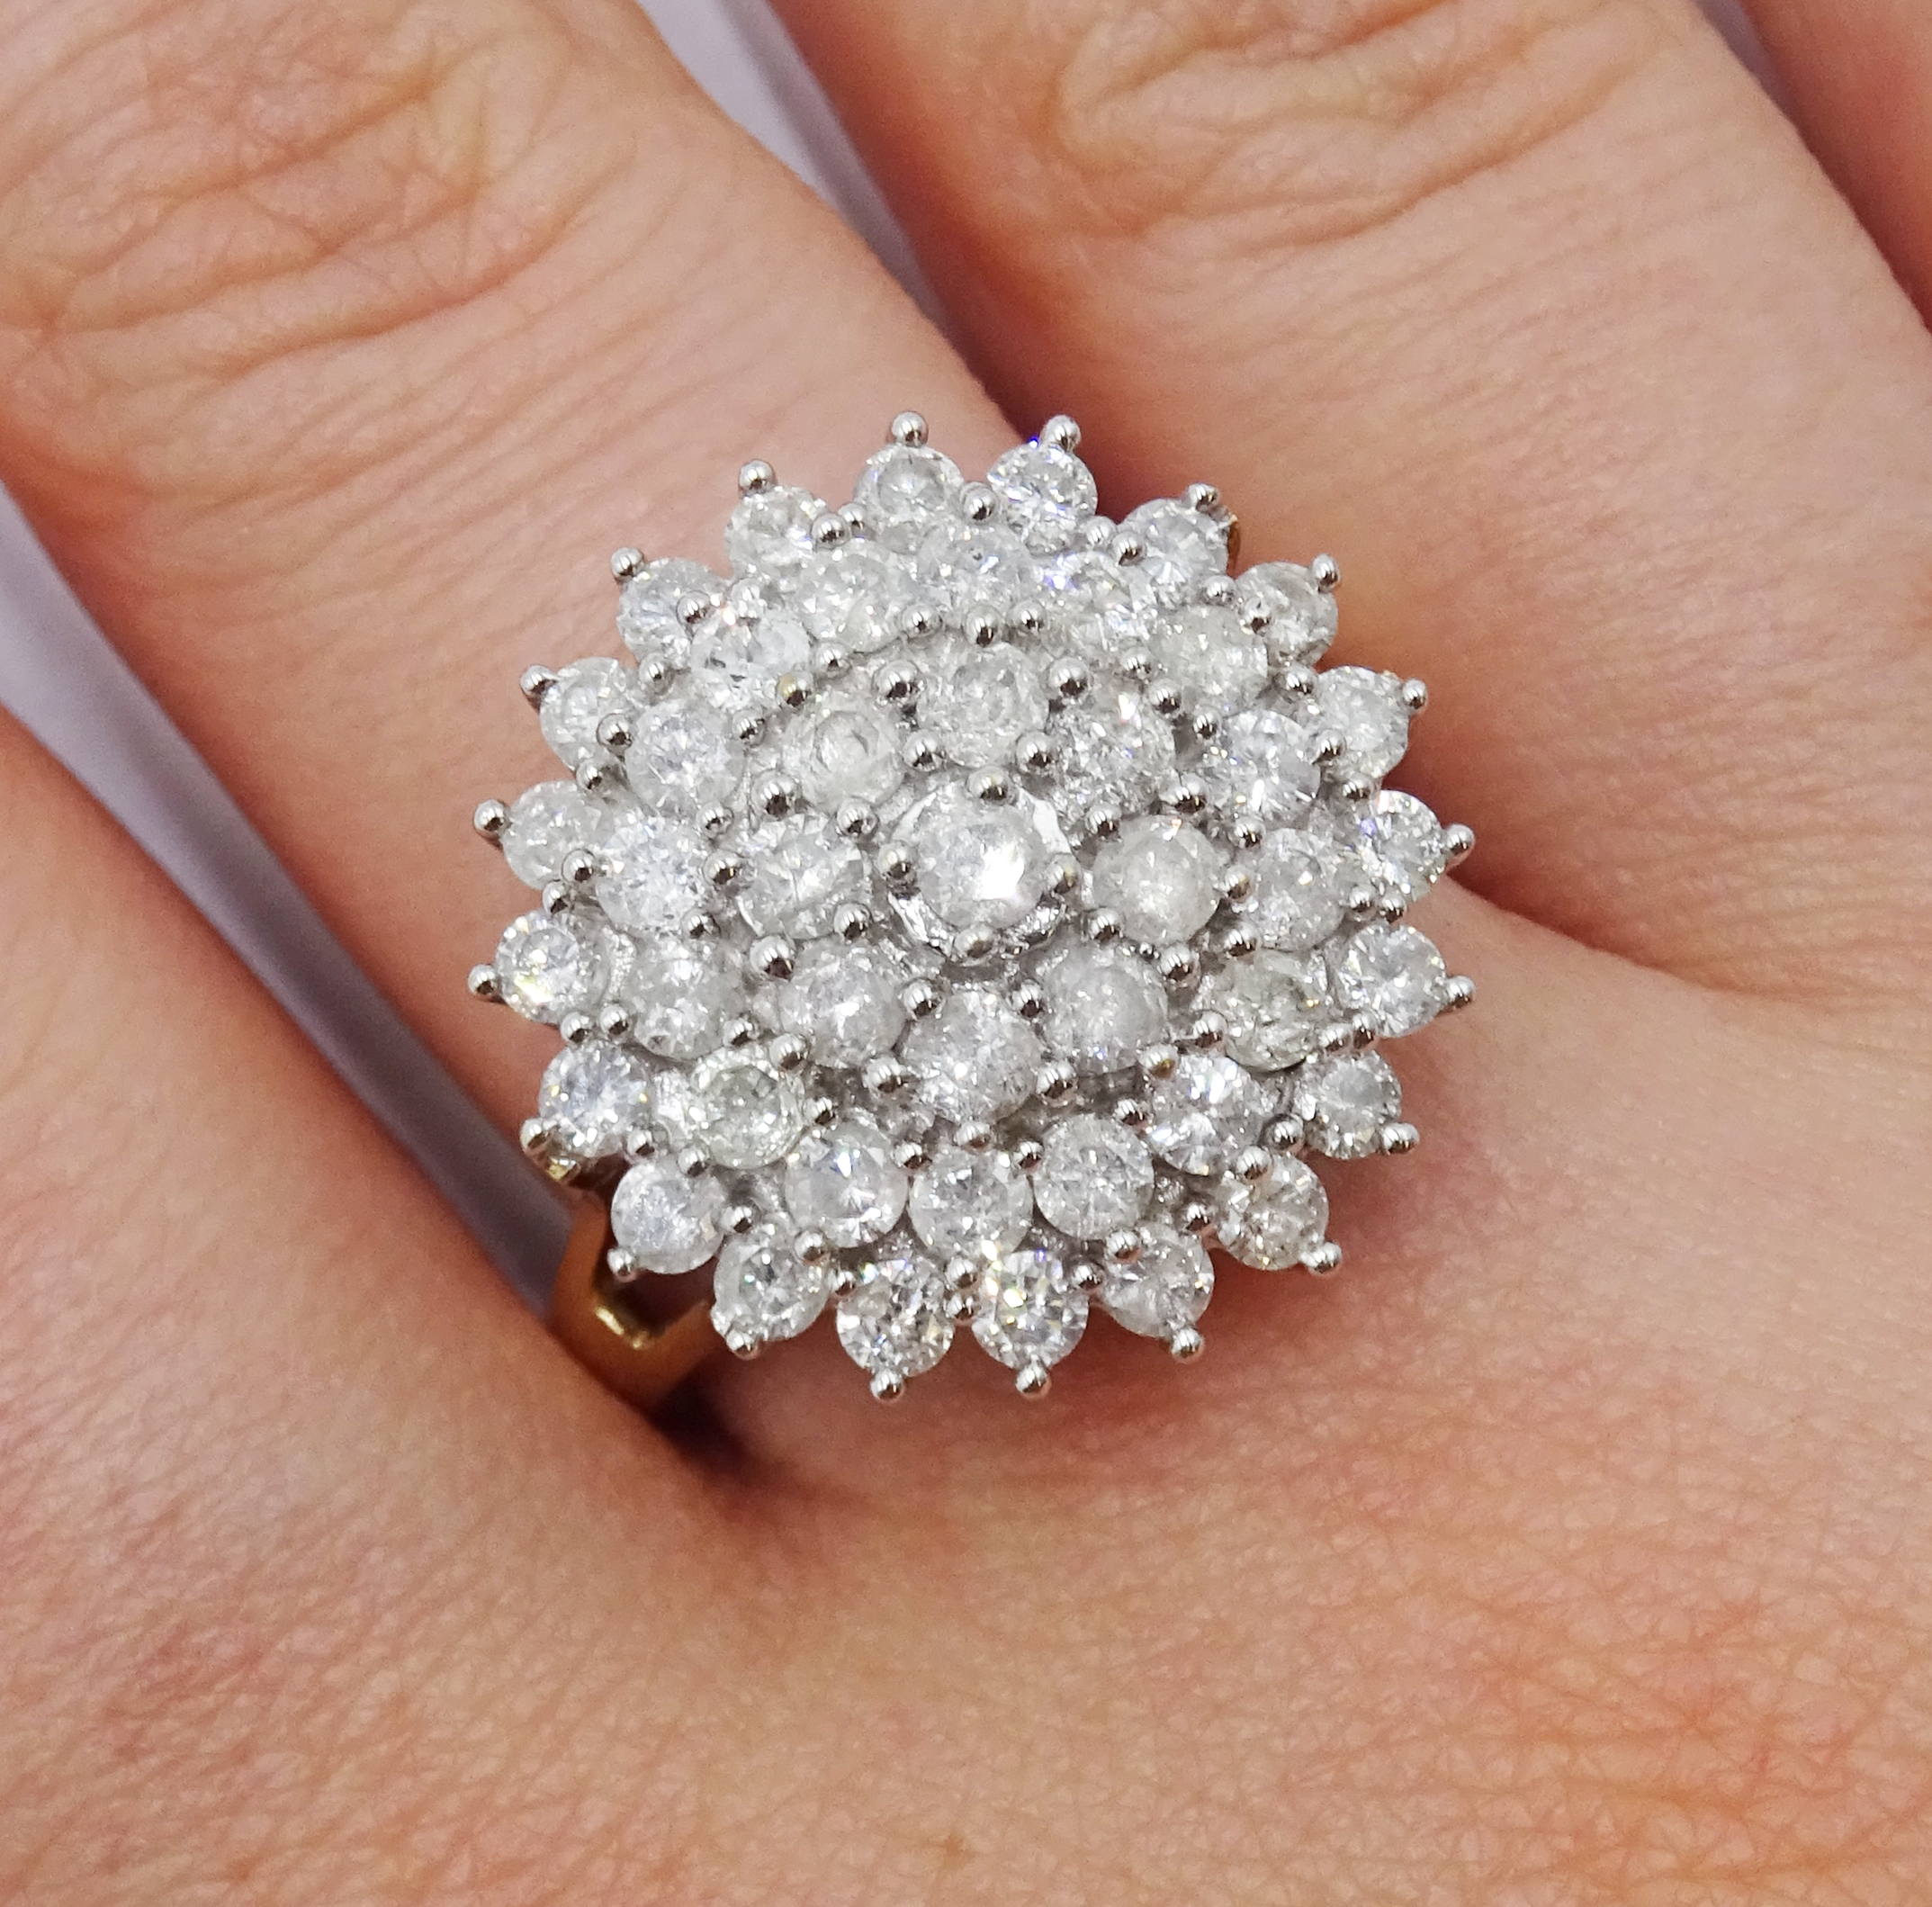 9ct gold cluster ring - Image 2 of 6